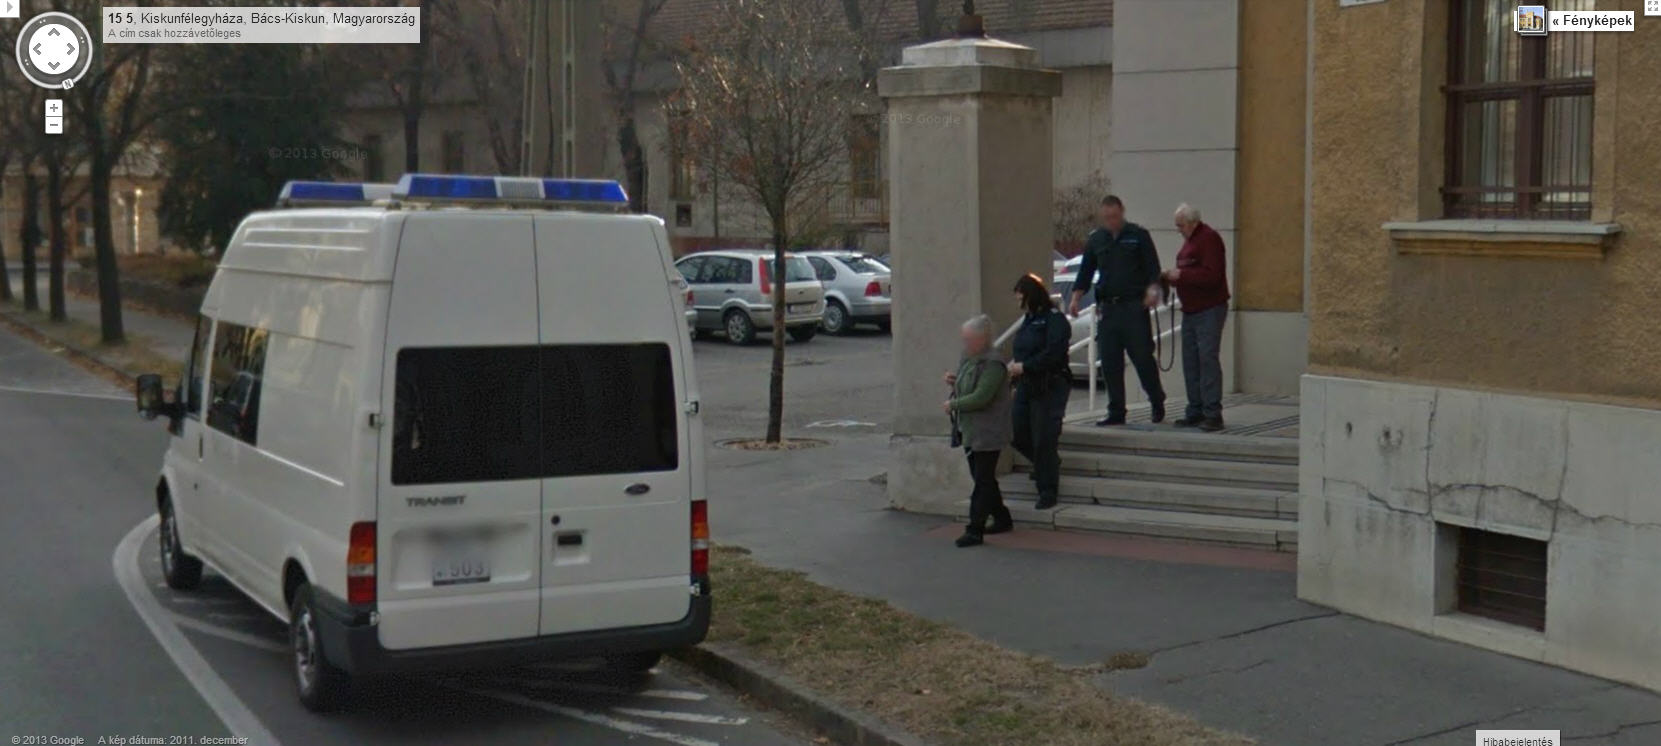 Why is this old Hungarian Couple getting arrested?